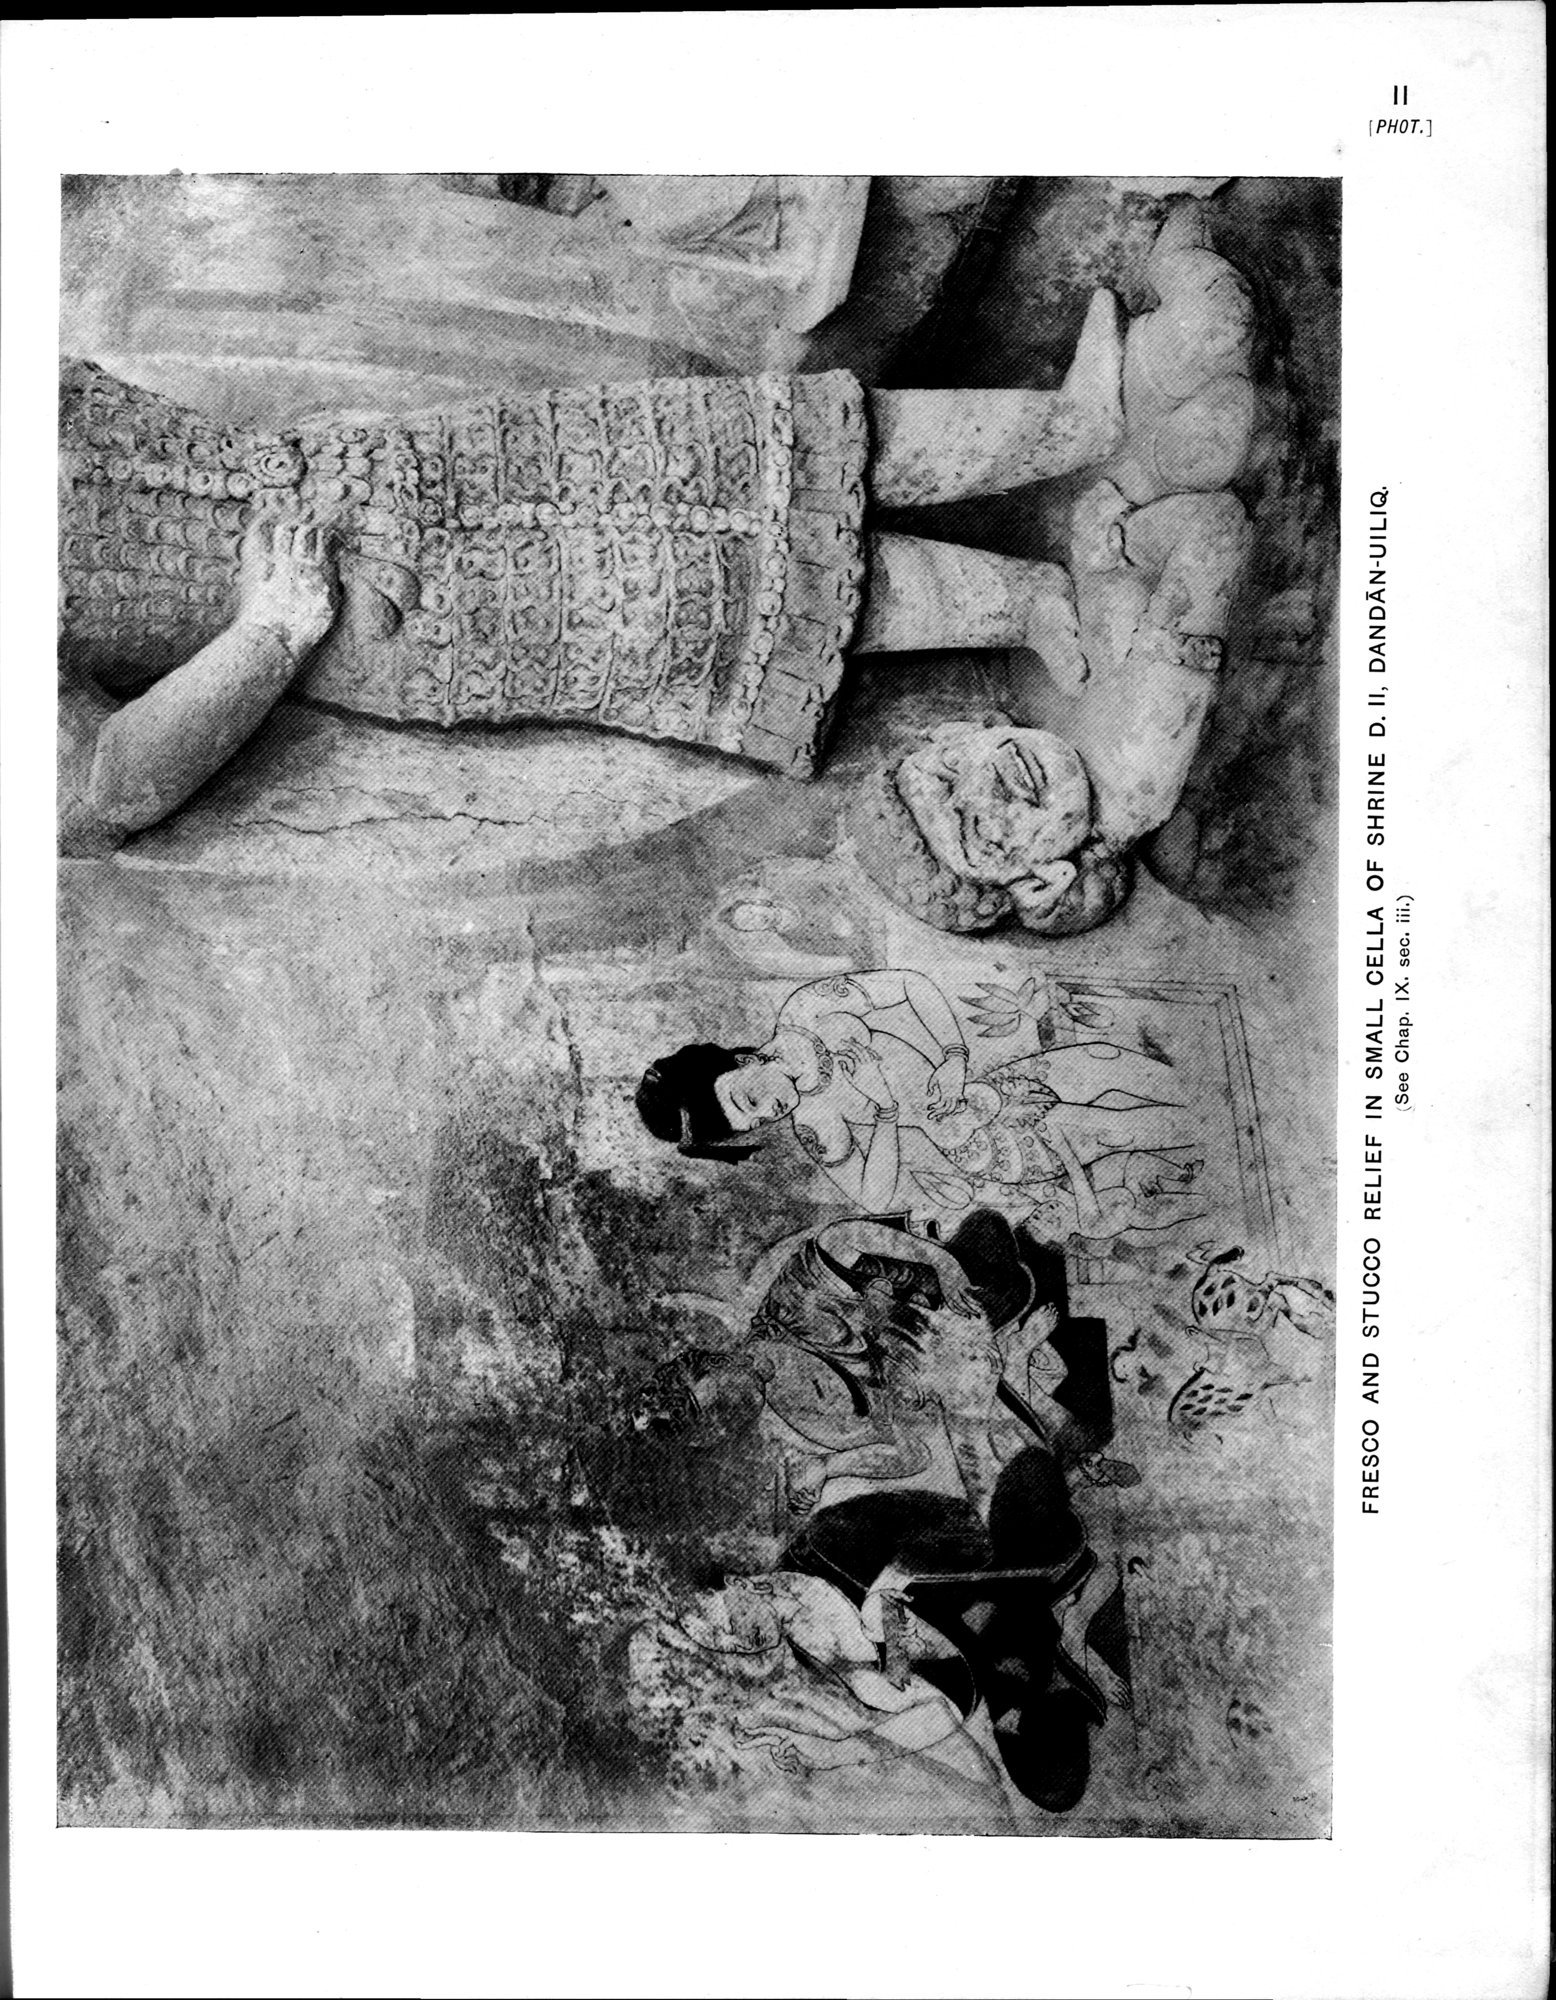 Ancient Khotan : vol.2 / Page 15 (Grayscale High Resolution Image)